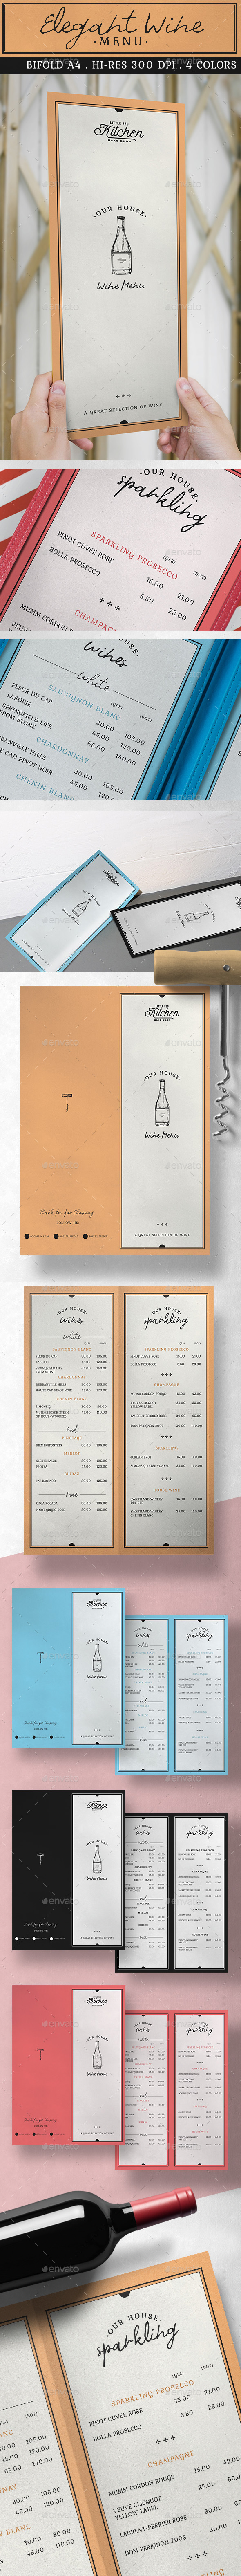 Elegant Wine Menu - Food Menus Print Templates